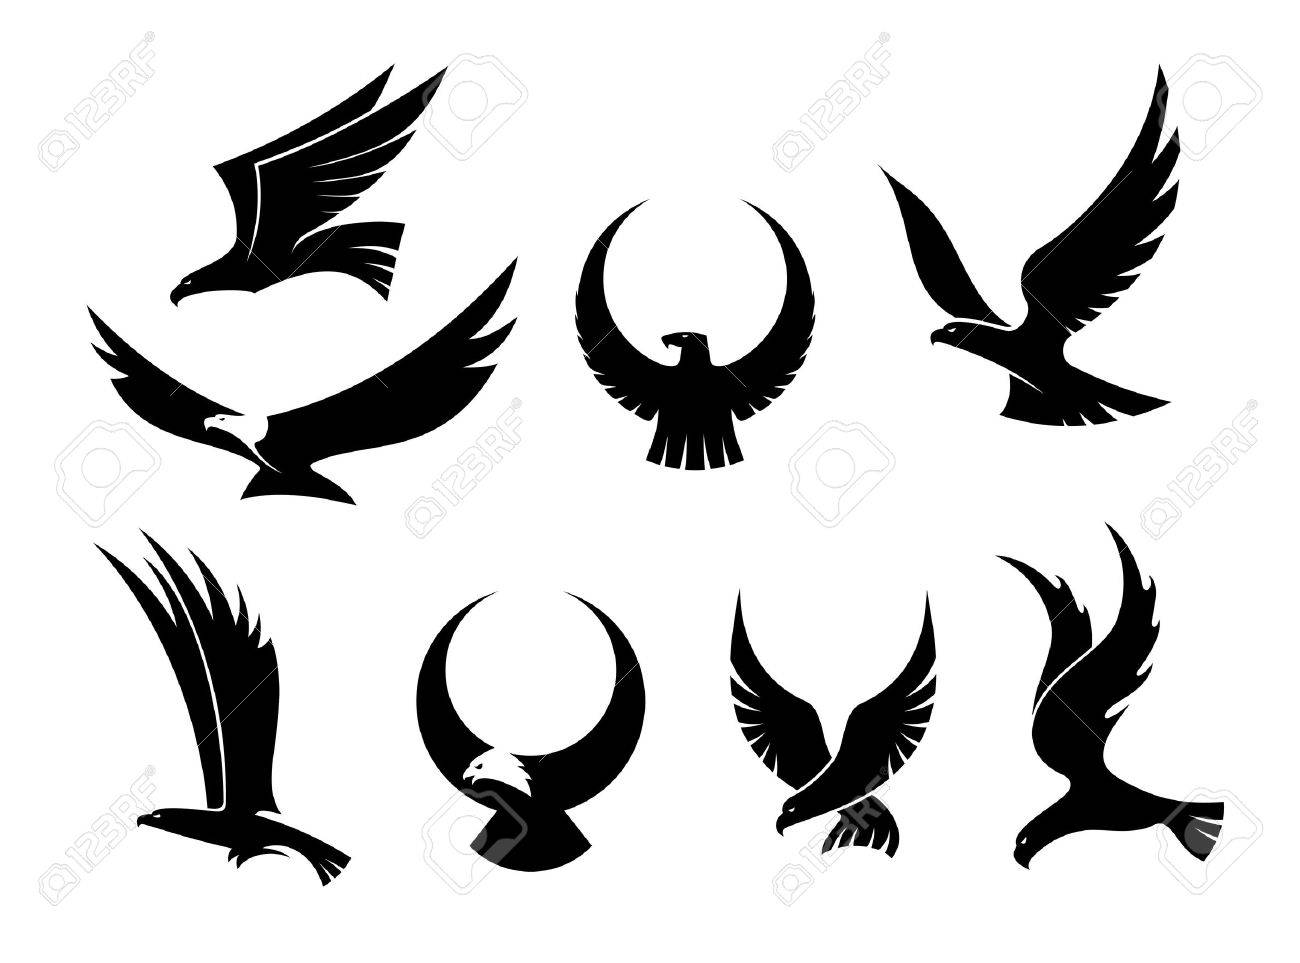 Setof black silhouettes of  Eagle Wings Silhouette